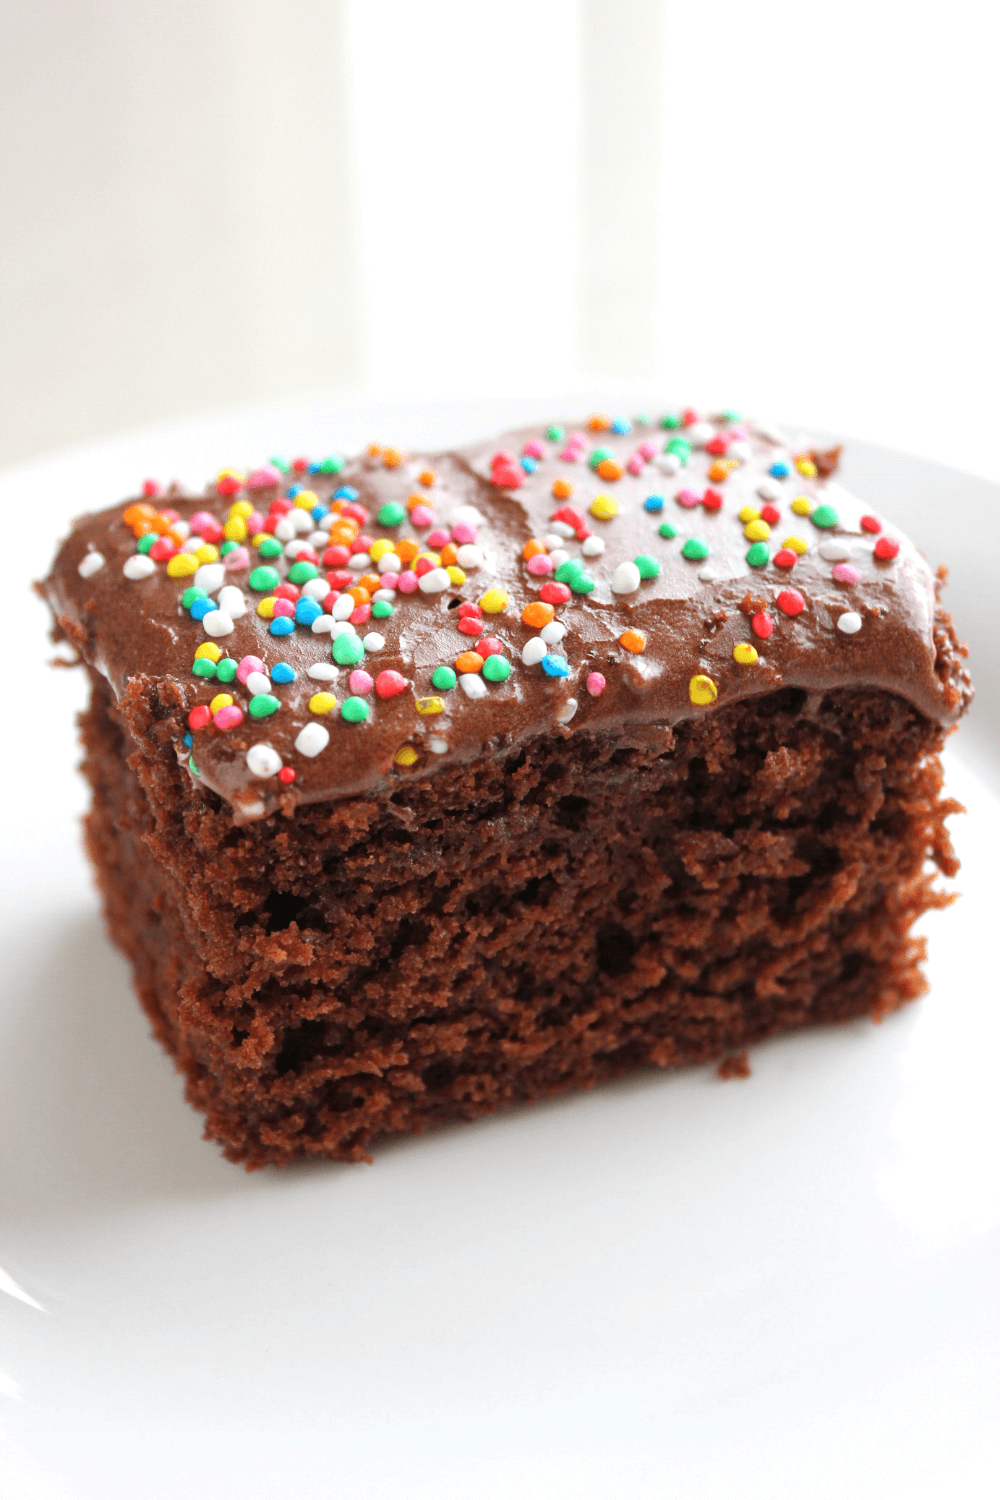 This chocolate crazy cake, or depression cake or wacky cake as it is sometimes known, contains no eggs, butter or milk.  This cake only uses basic pantry staple ingredients, perfect for those times you have no eggs or butter on hand.